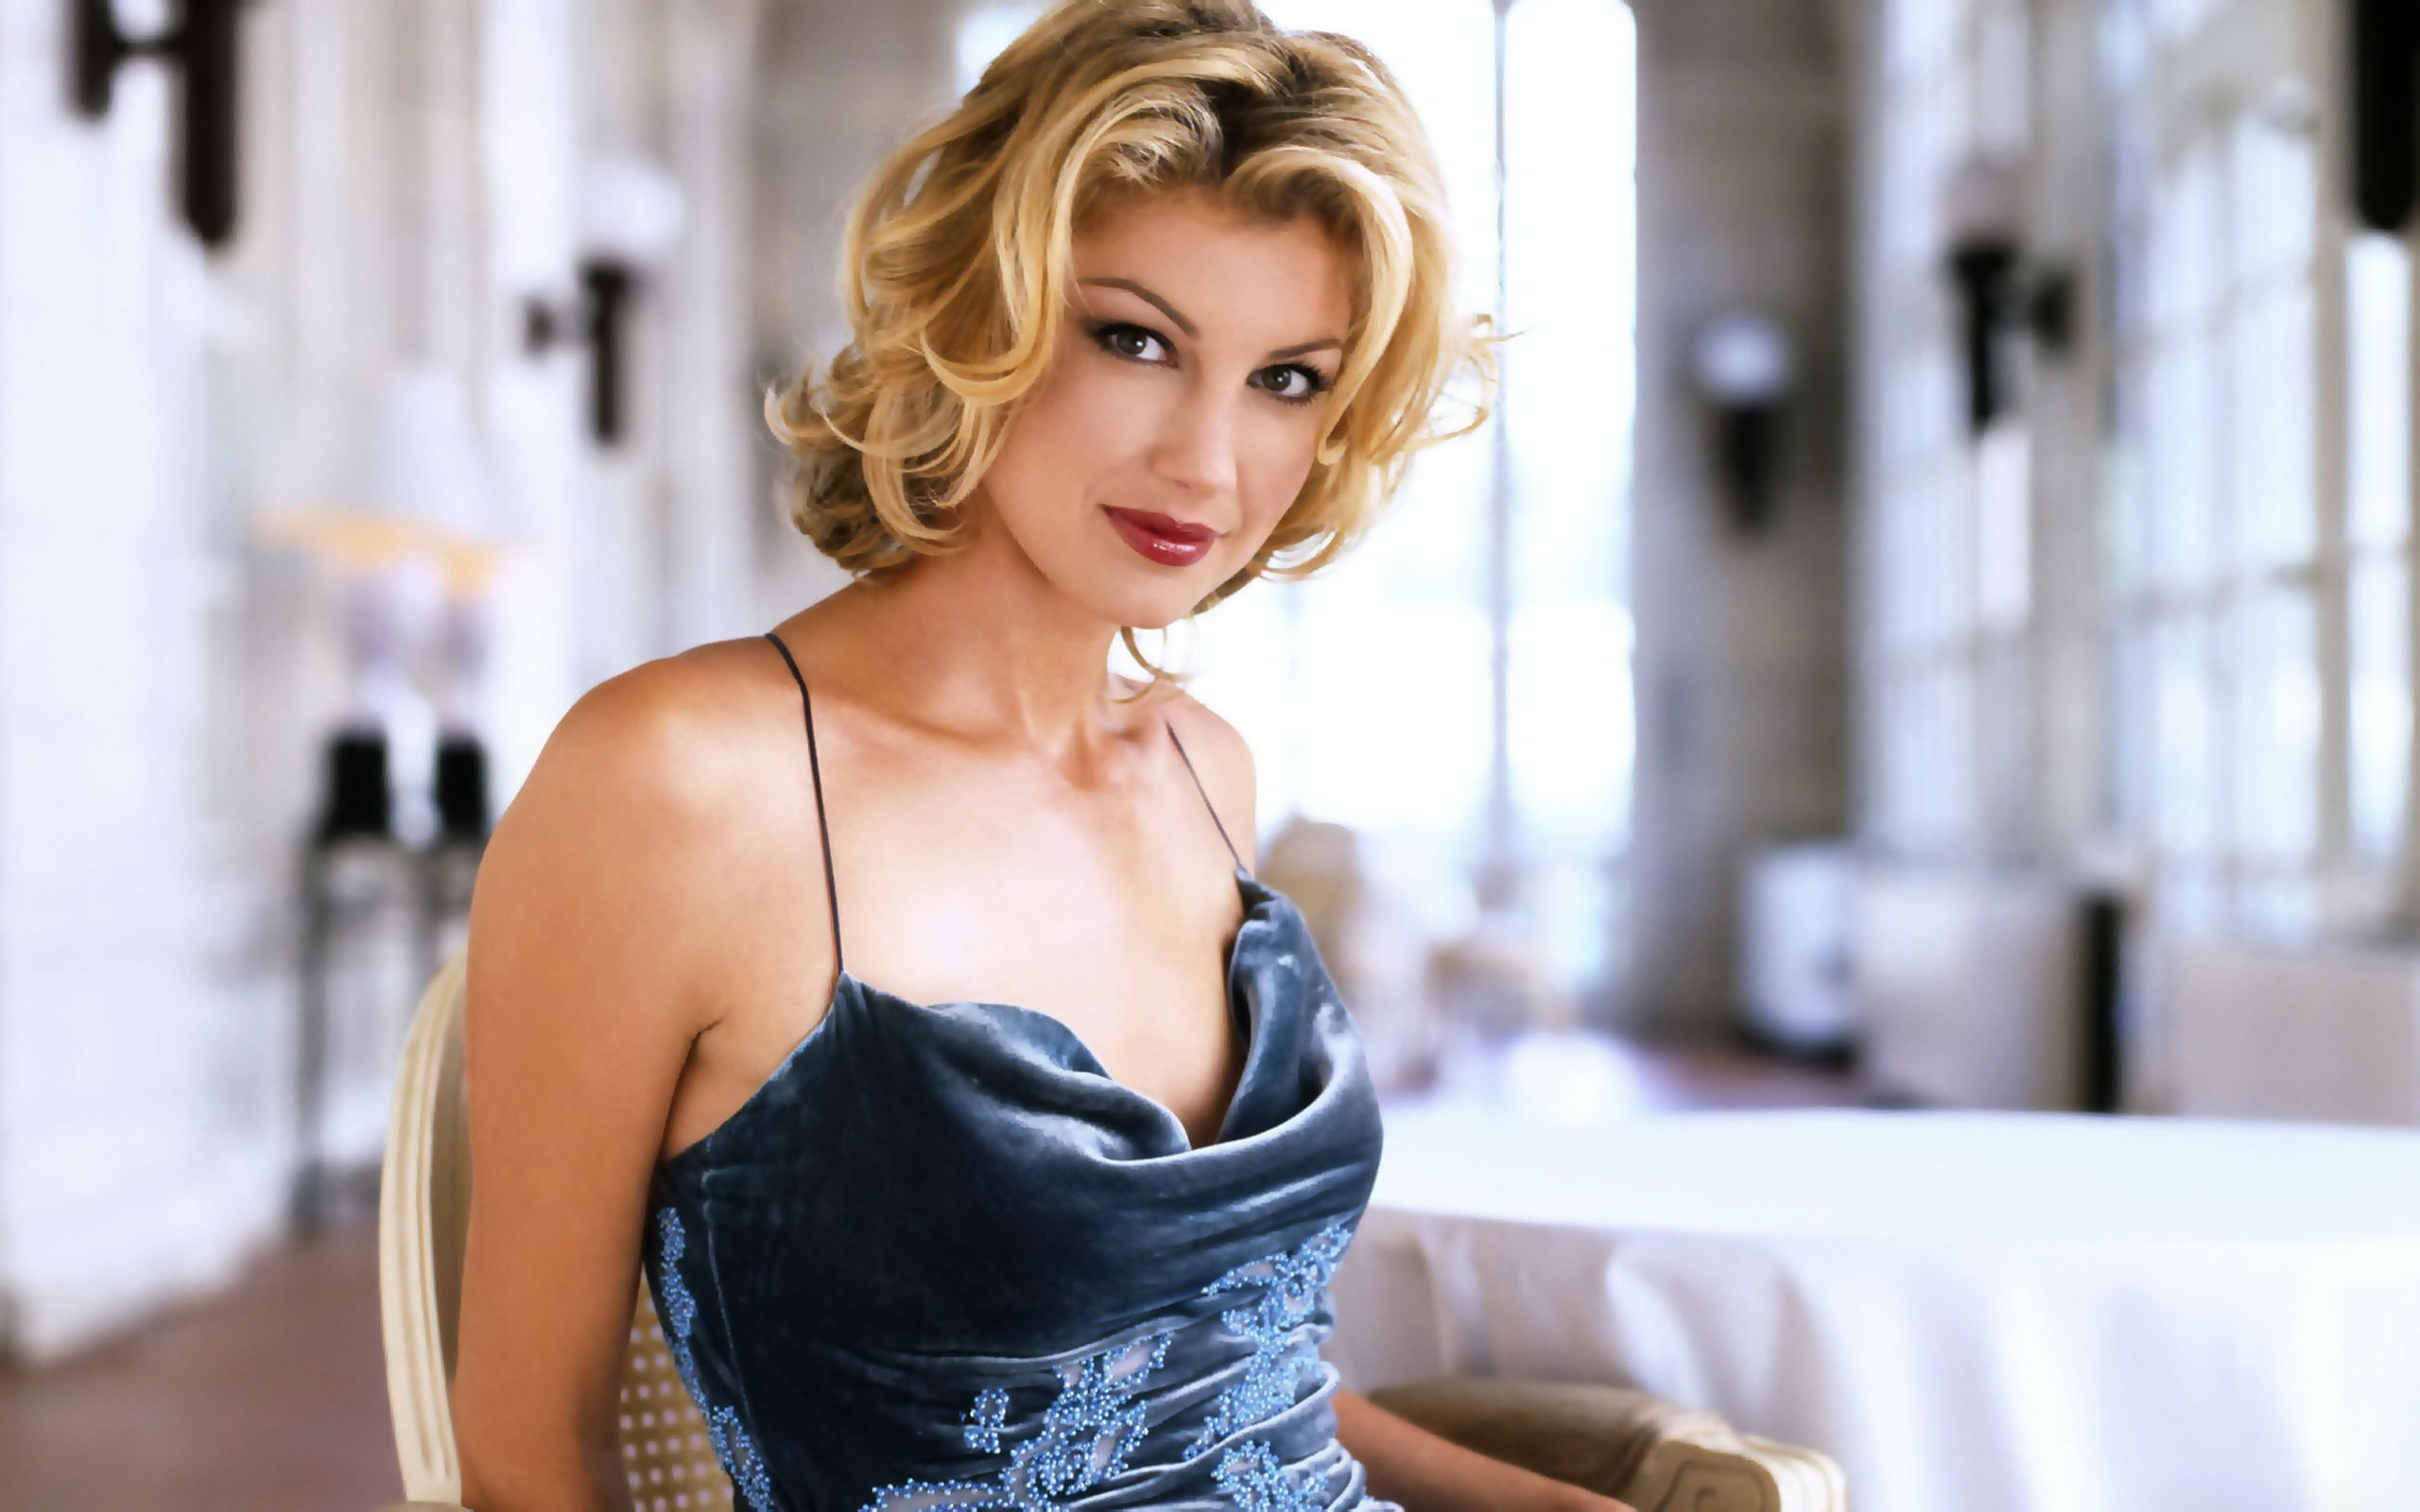 Faith hill goes swimming in sexy black bikini with tim mcgraw close behind country music nation